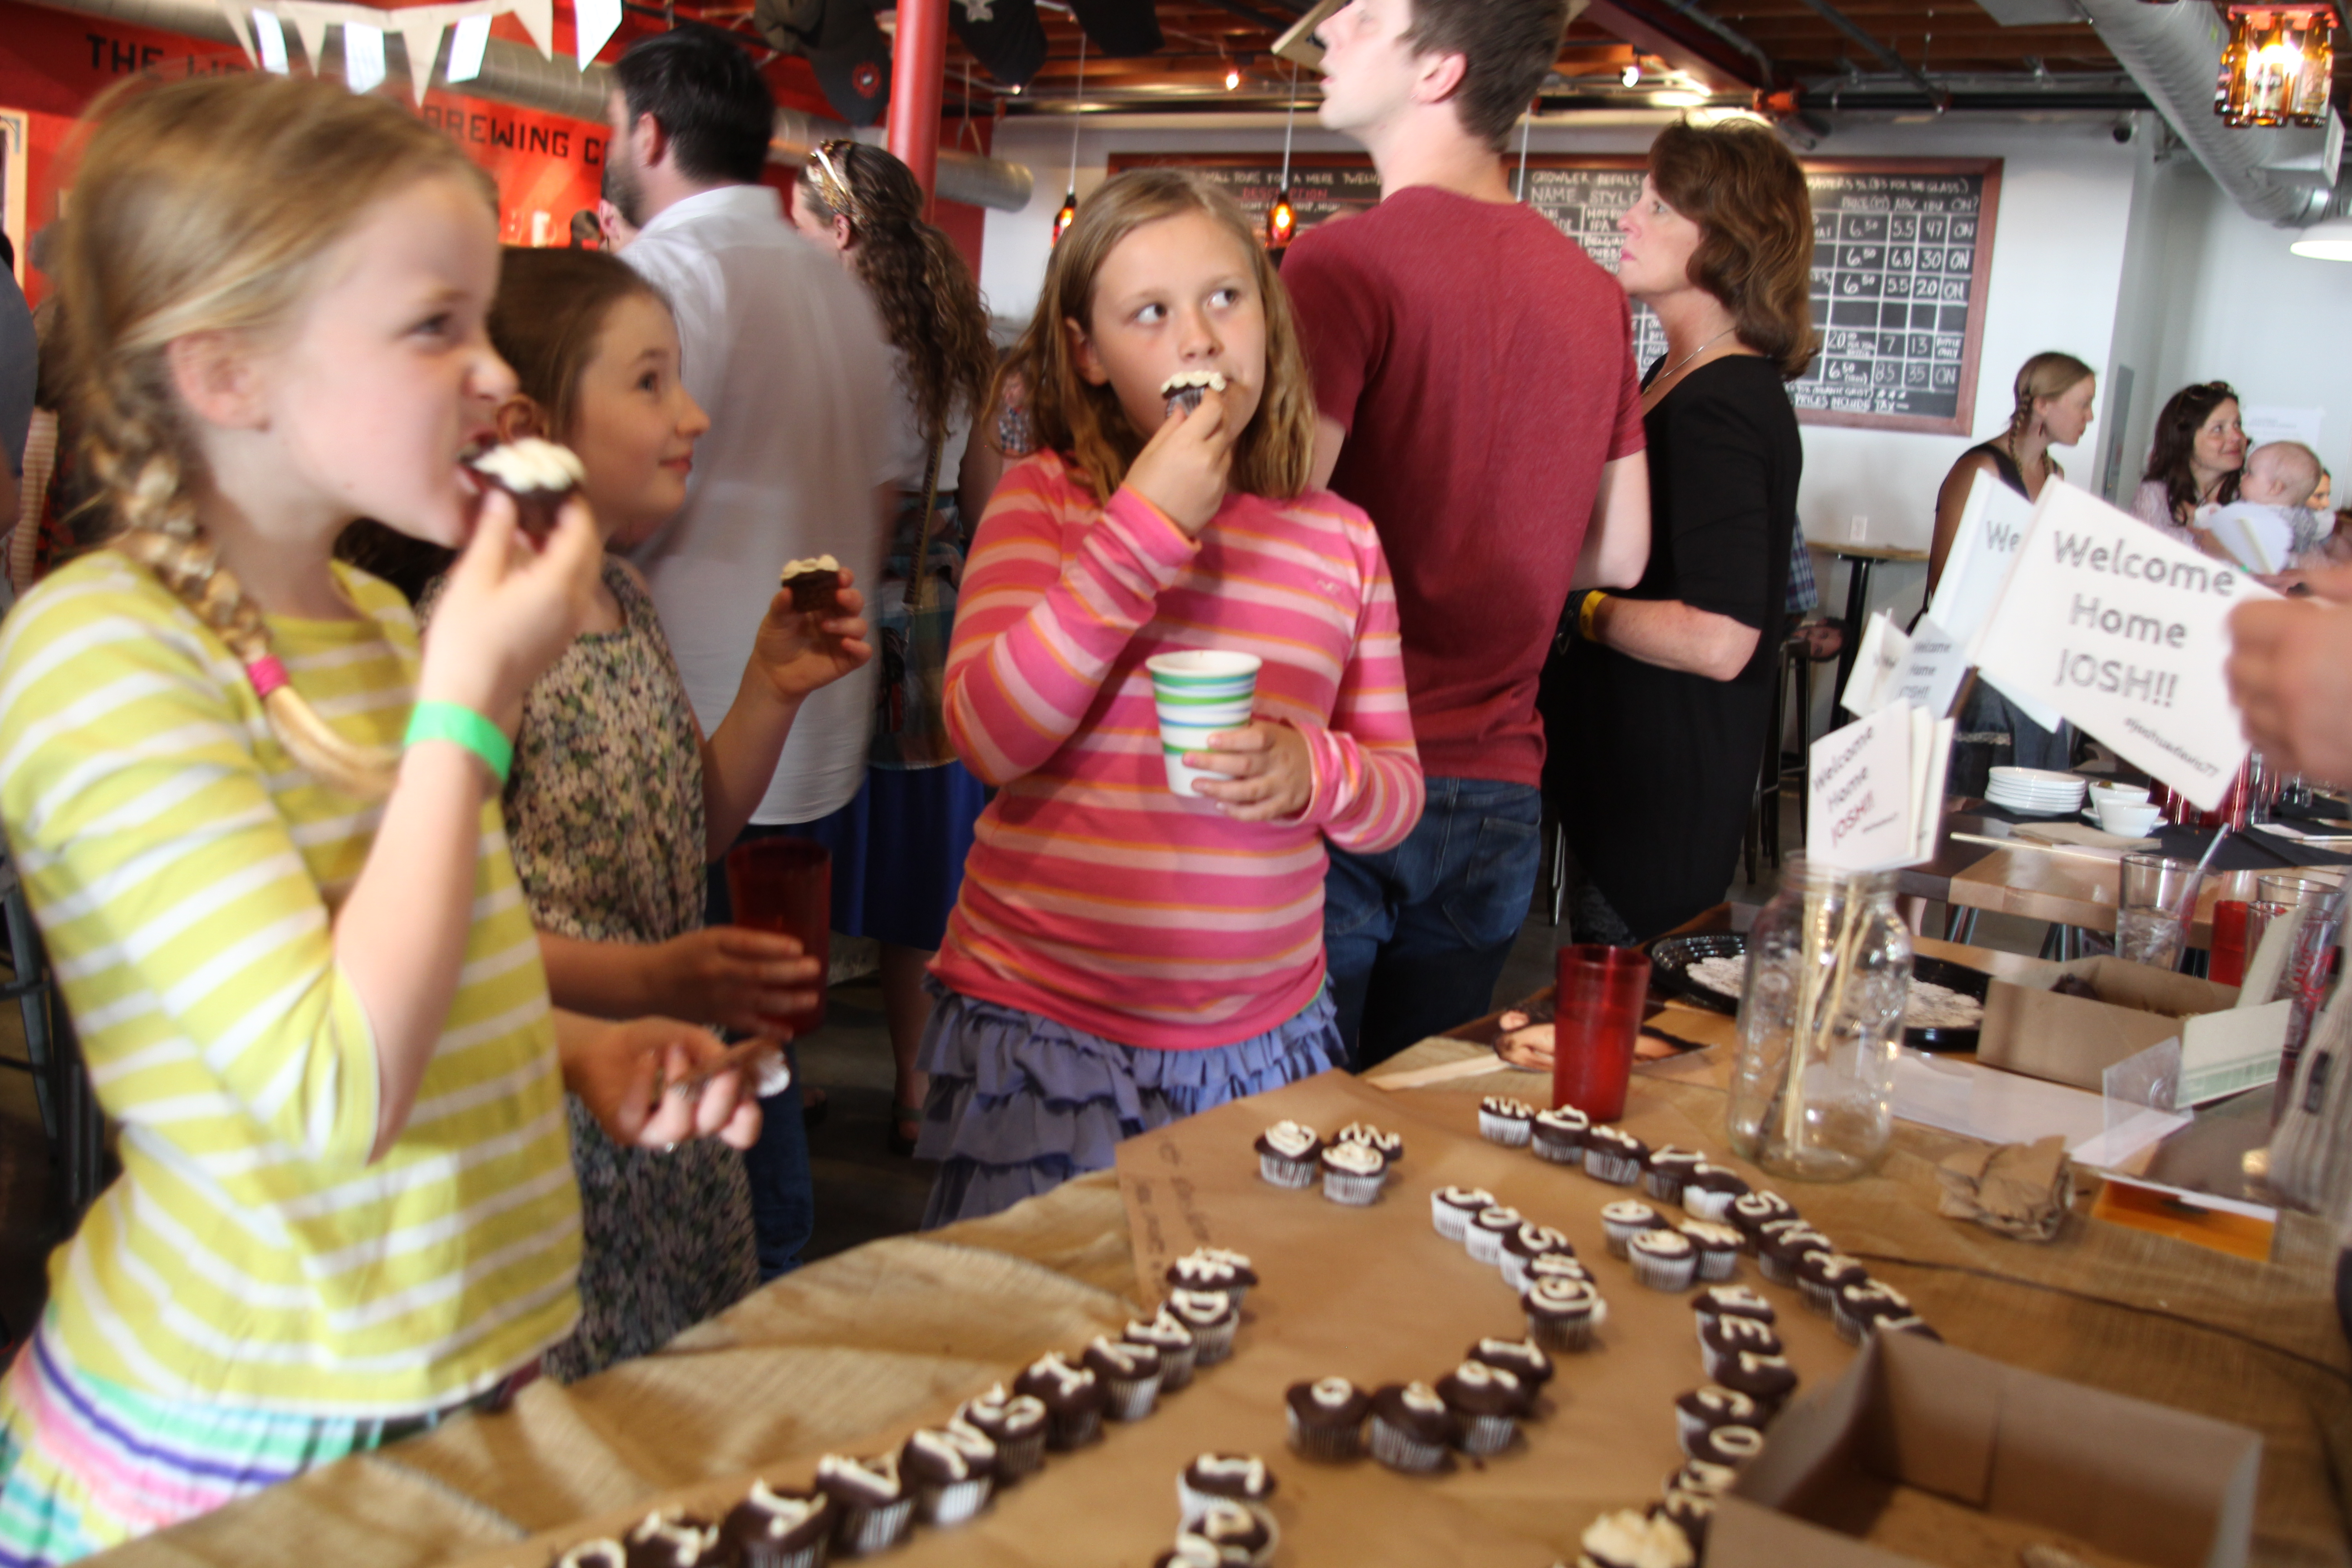 Cupcakes Children Tahlia Davis The Workshop Brewing Company #davisNation Traverse City Joshua Davis NBC The Voice Homecoming Party